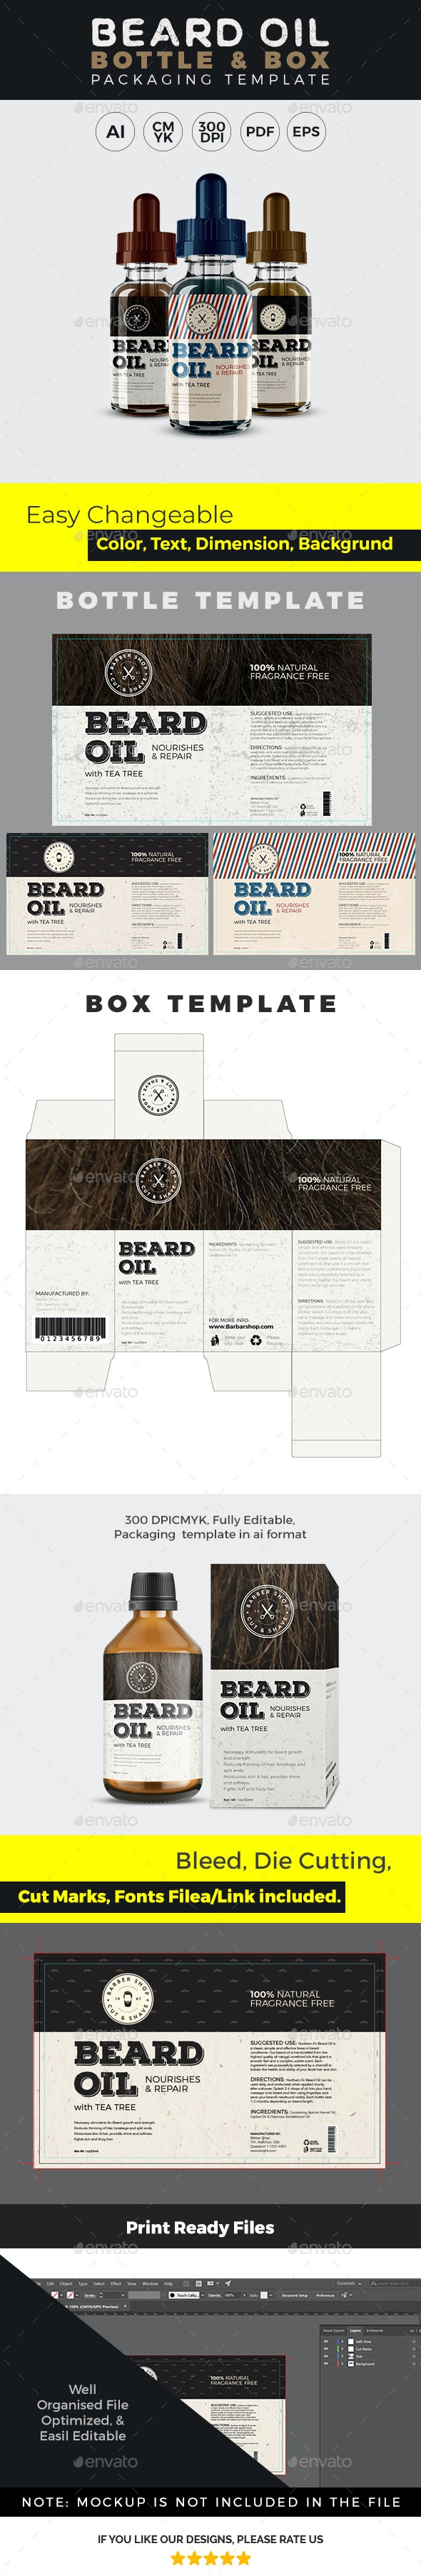 High Quality Beard Label Template - Packaging Print Templates